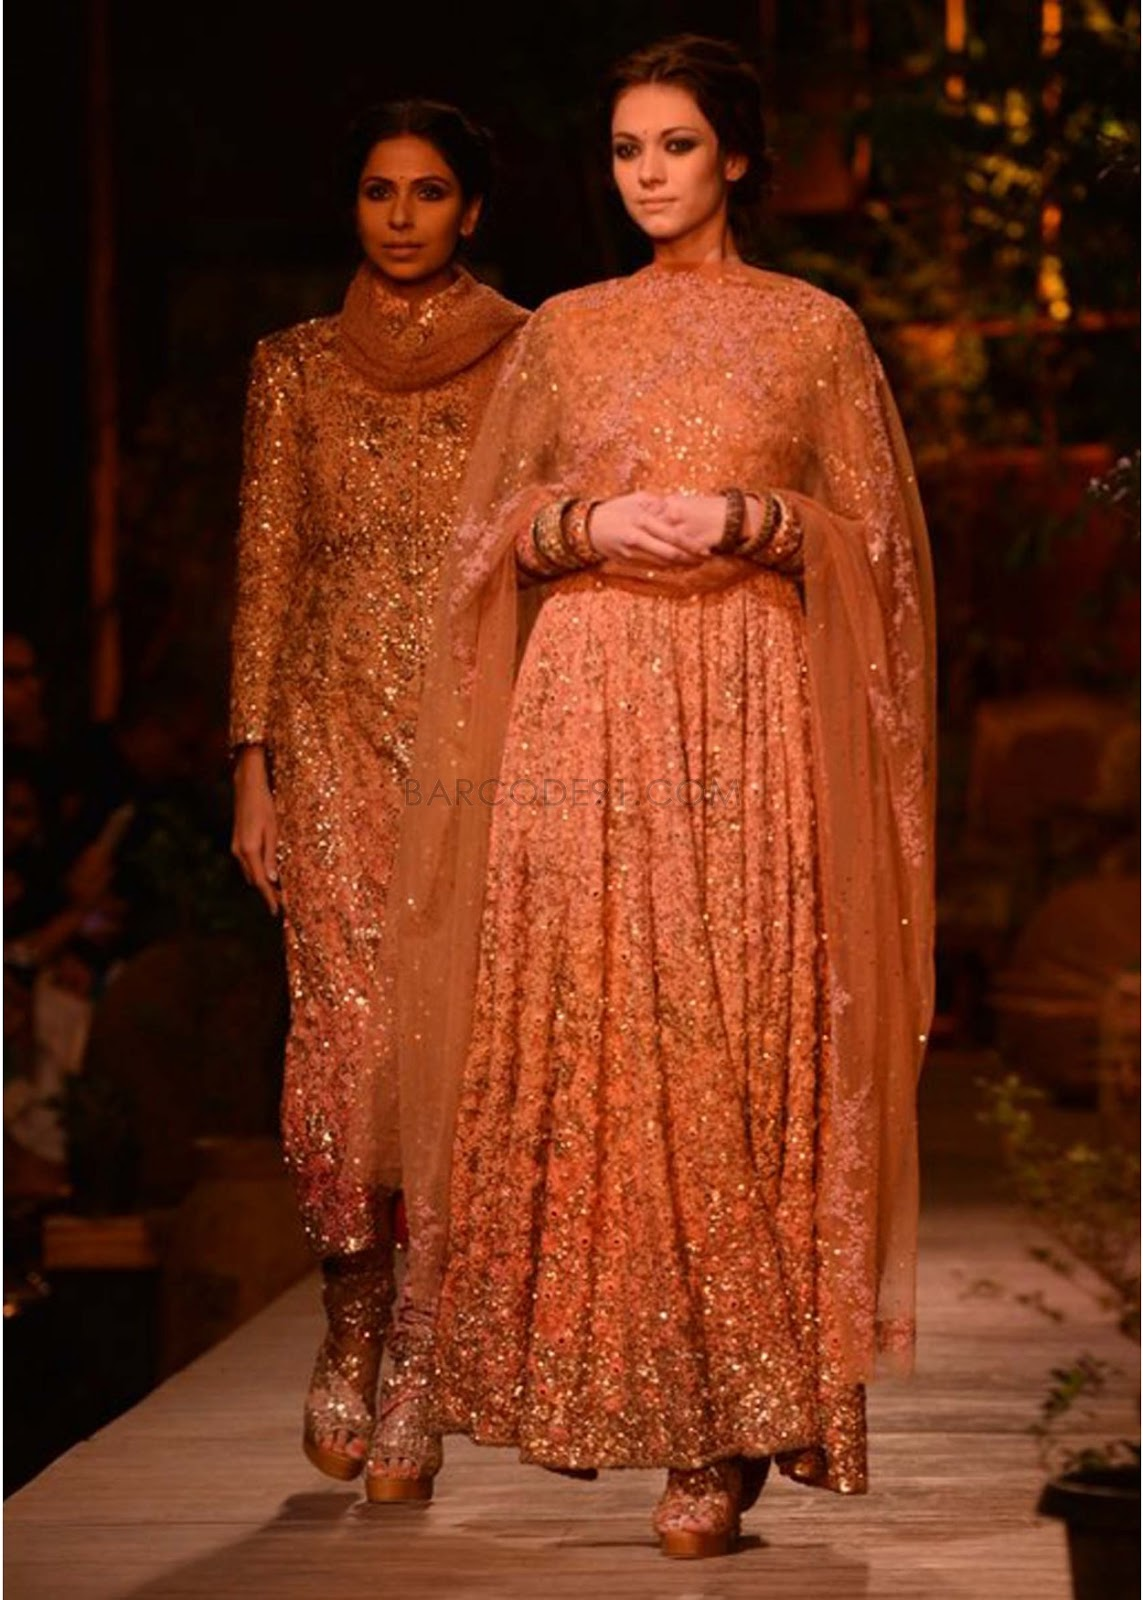 Sabyasachi Collection at PCJ Delhi Couture Week 2013 ... Sabyasachi Bridal Collection 2013